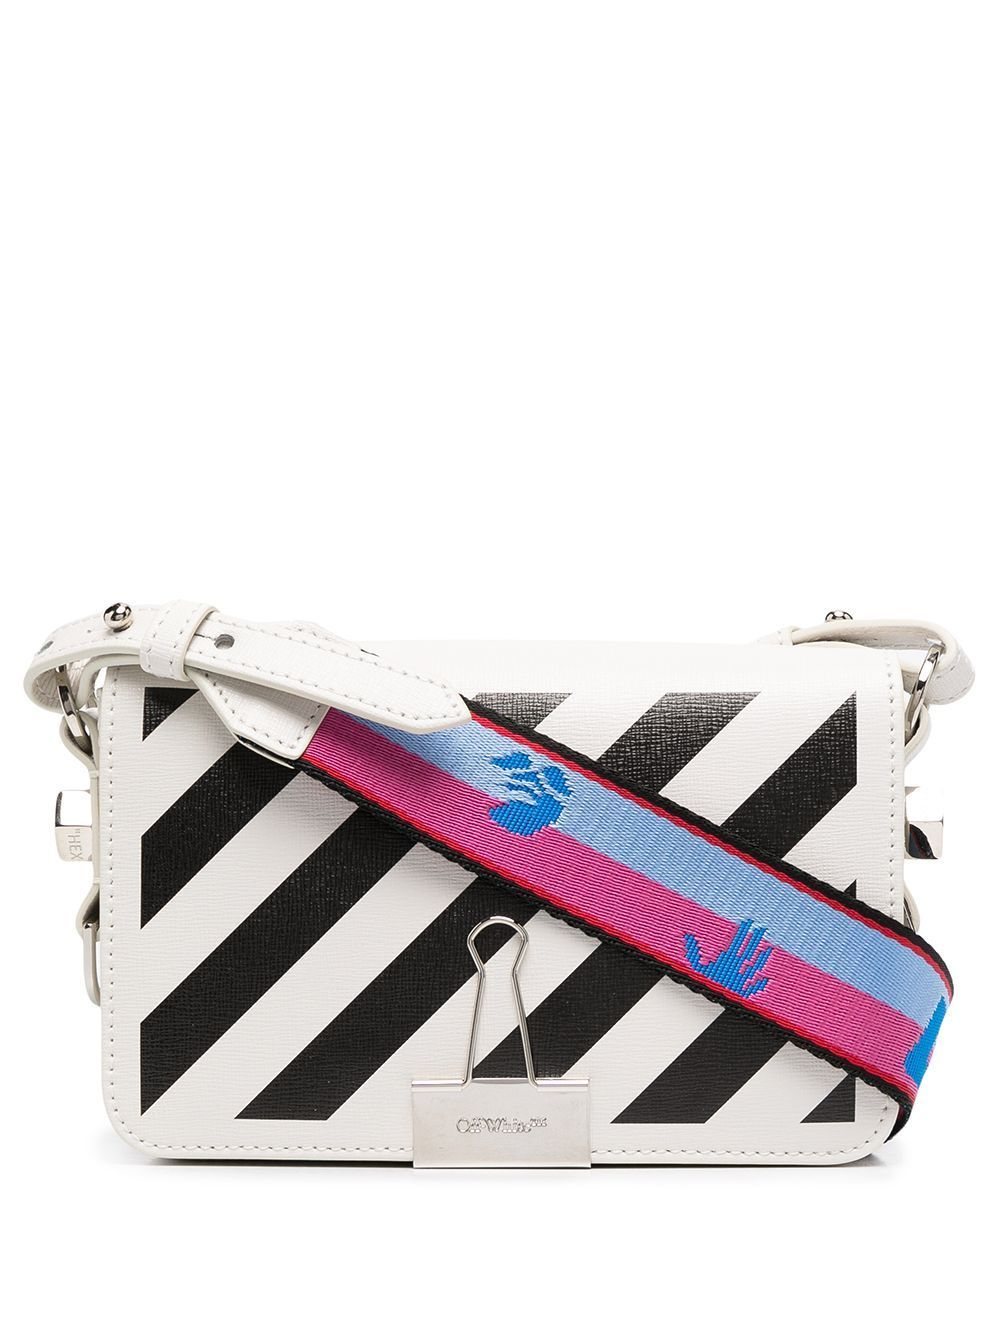 Off-White Women's Diagonal Mini Flap Bag White - Maison De Fashion